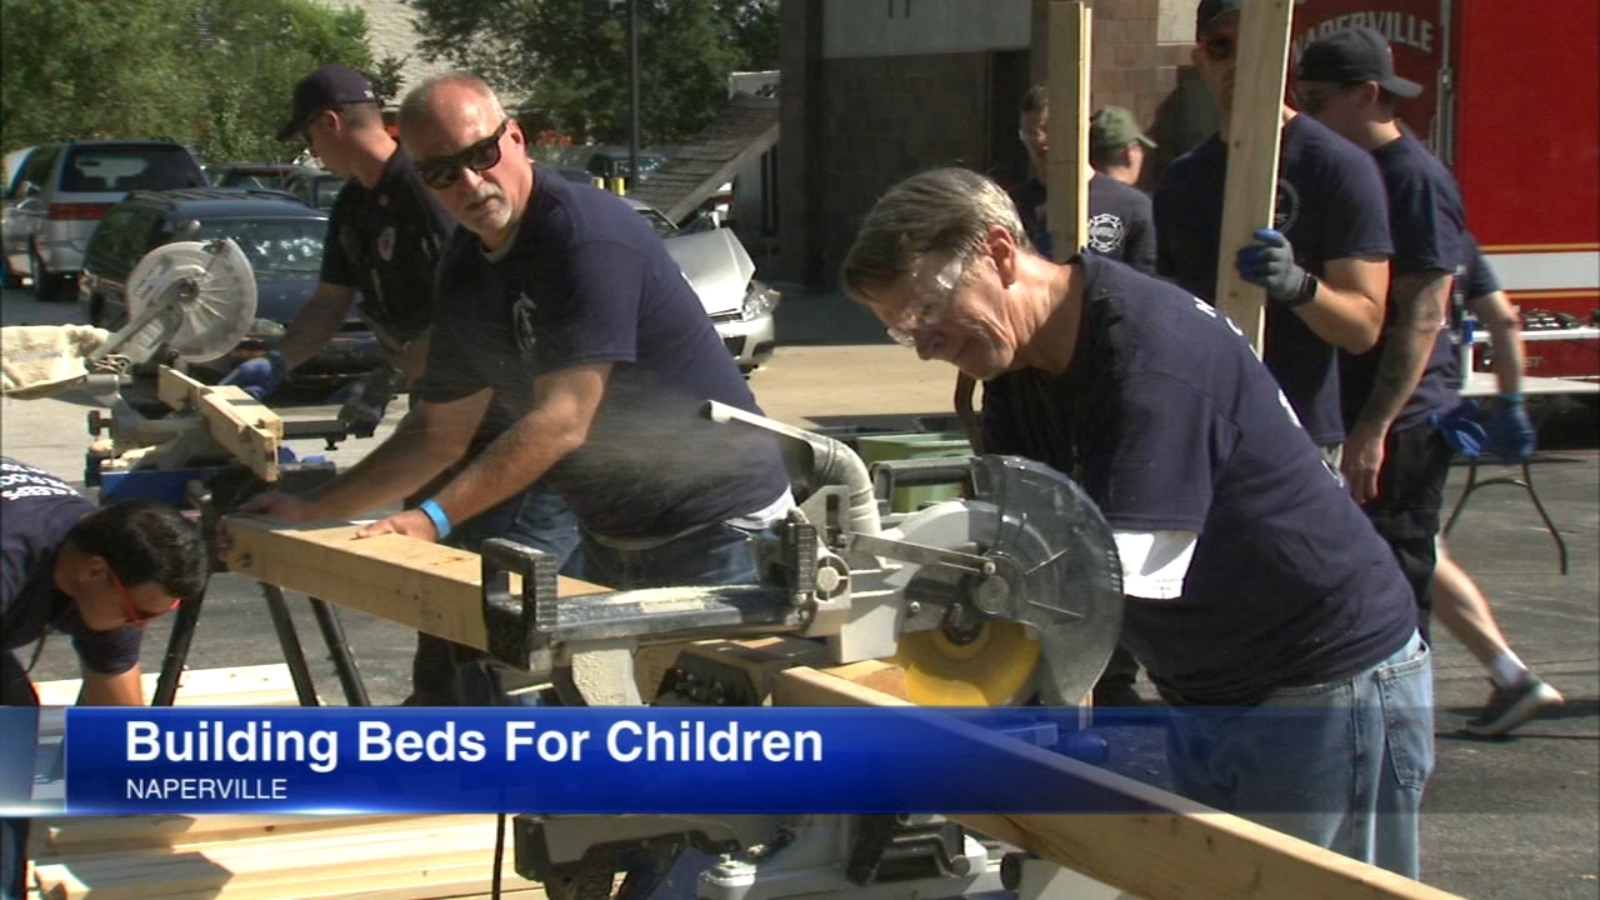 Naperville Fire Department helps nonprofit 'Sleep in Heavenly Peace' build beds for kids in need